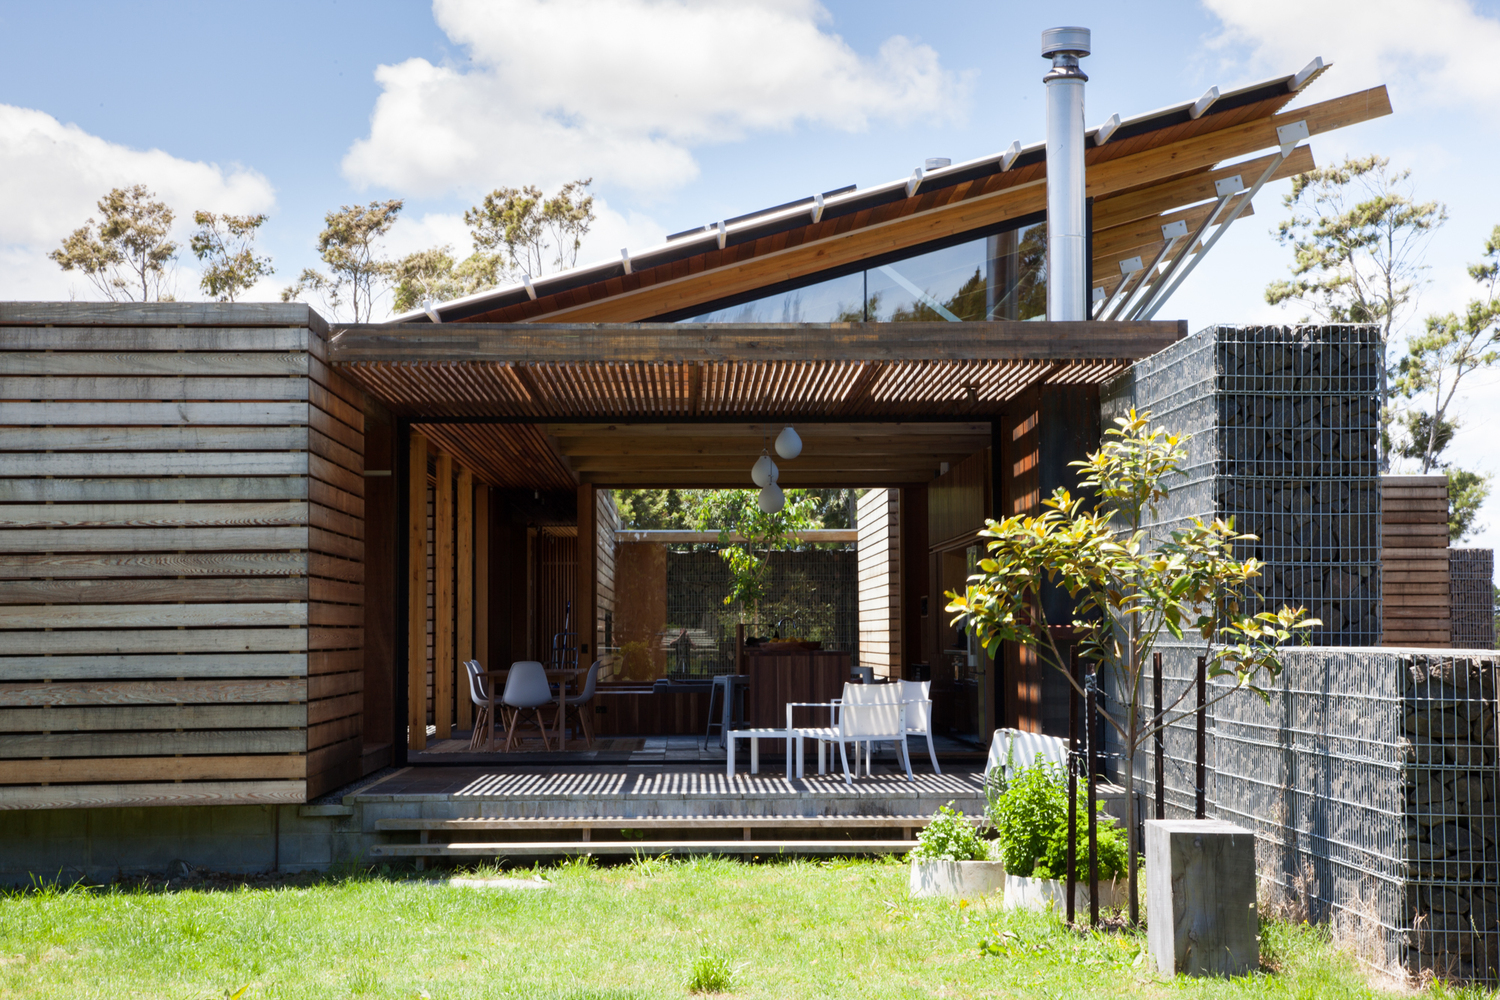 This Home Is Grounded Into Its Site by Walls of Gabion Baskets